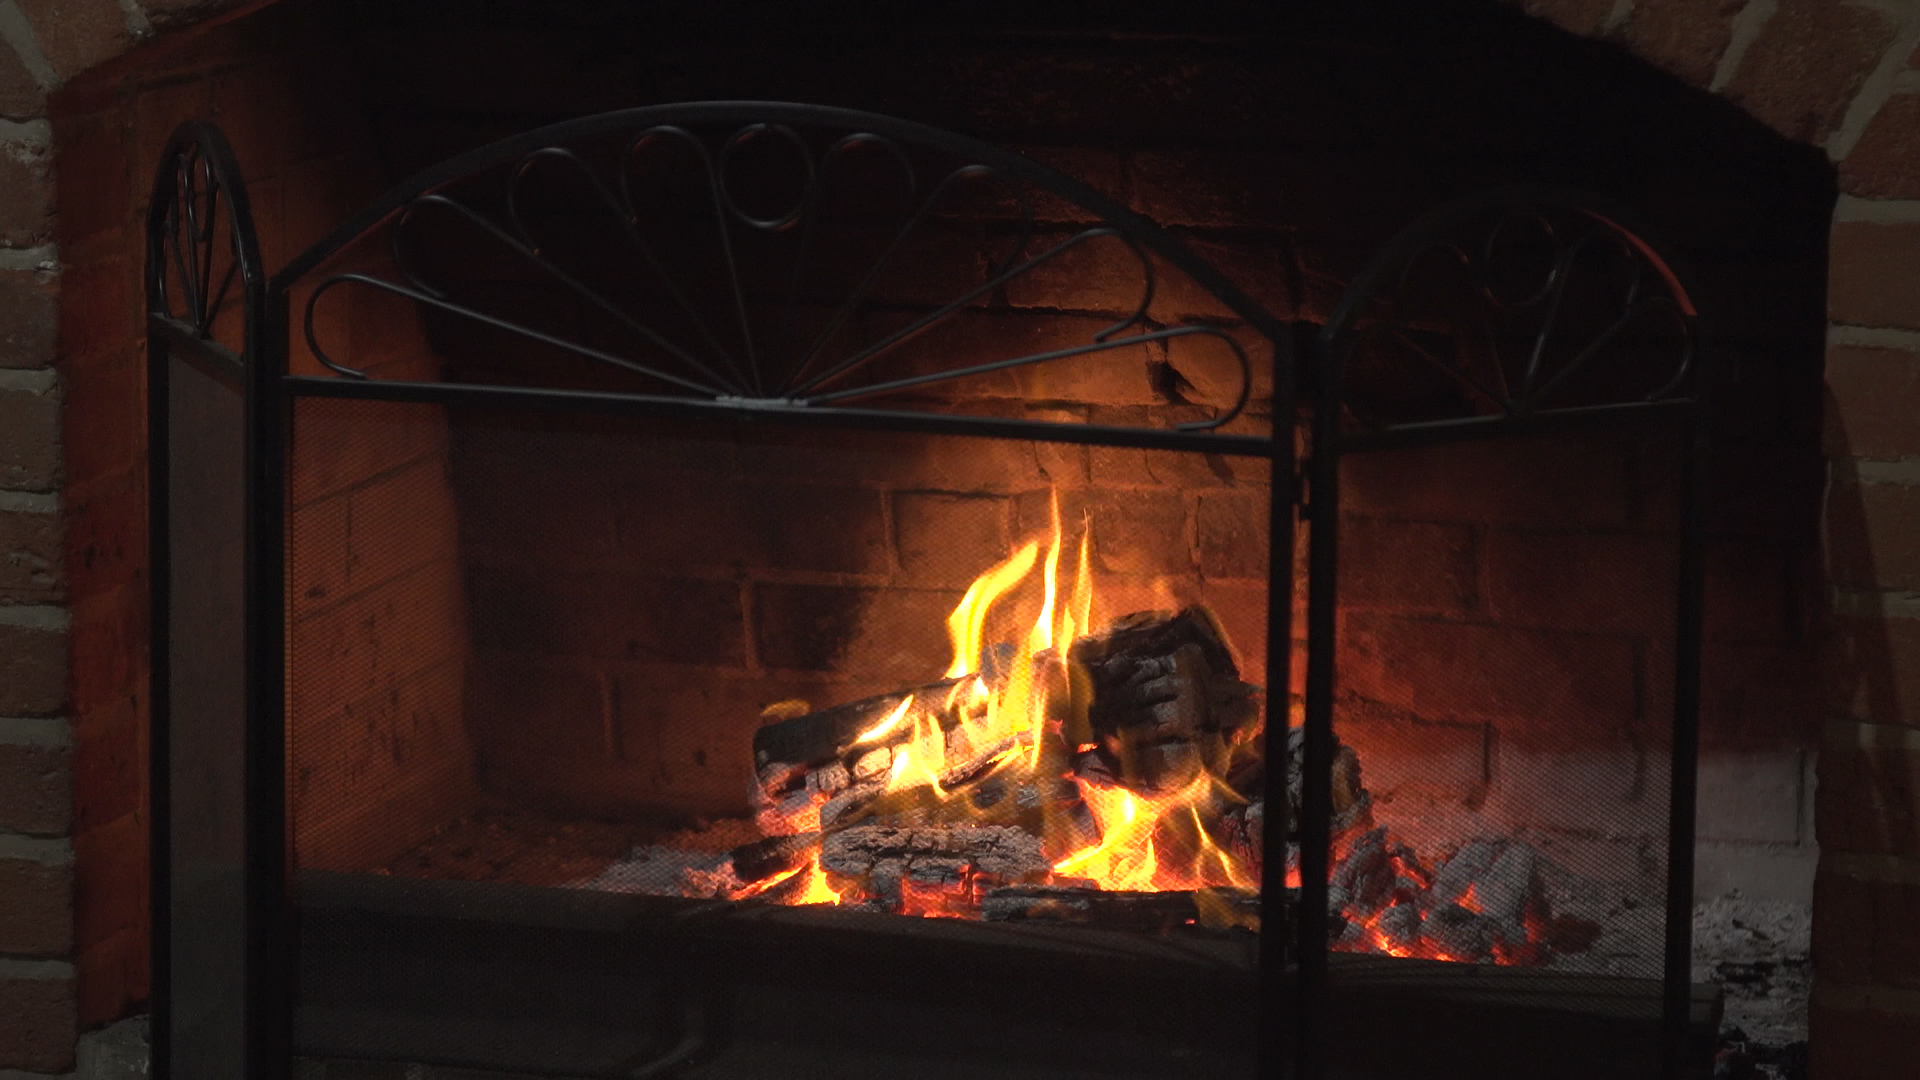 0013 Hd Warm Slow Motion Fireplace Burning During Winter